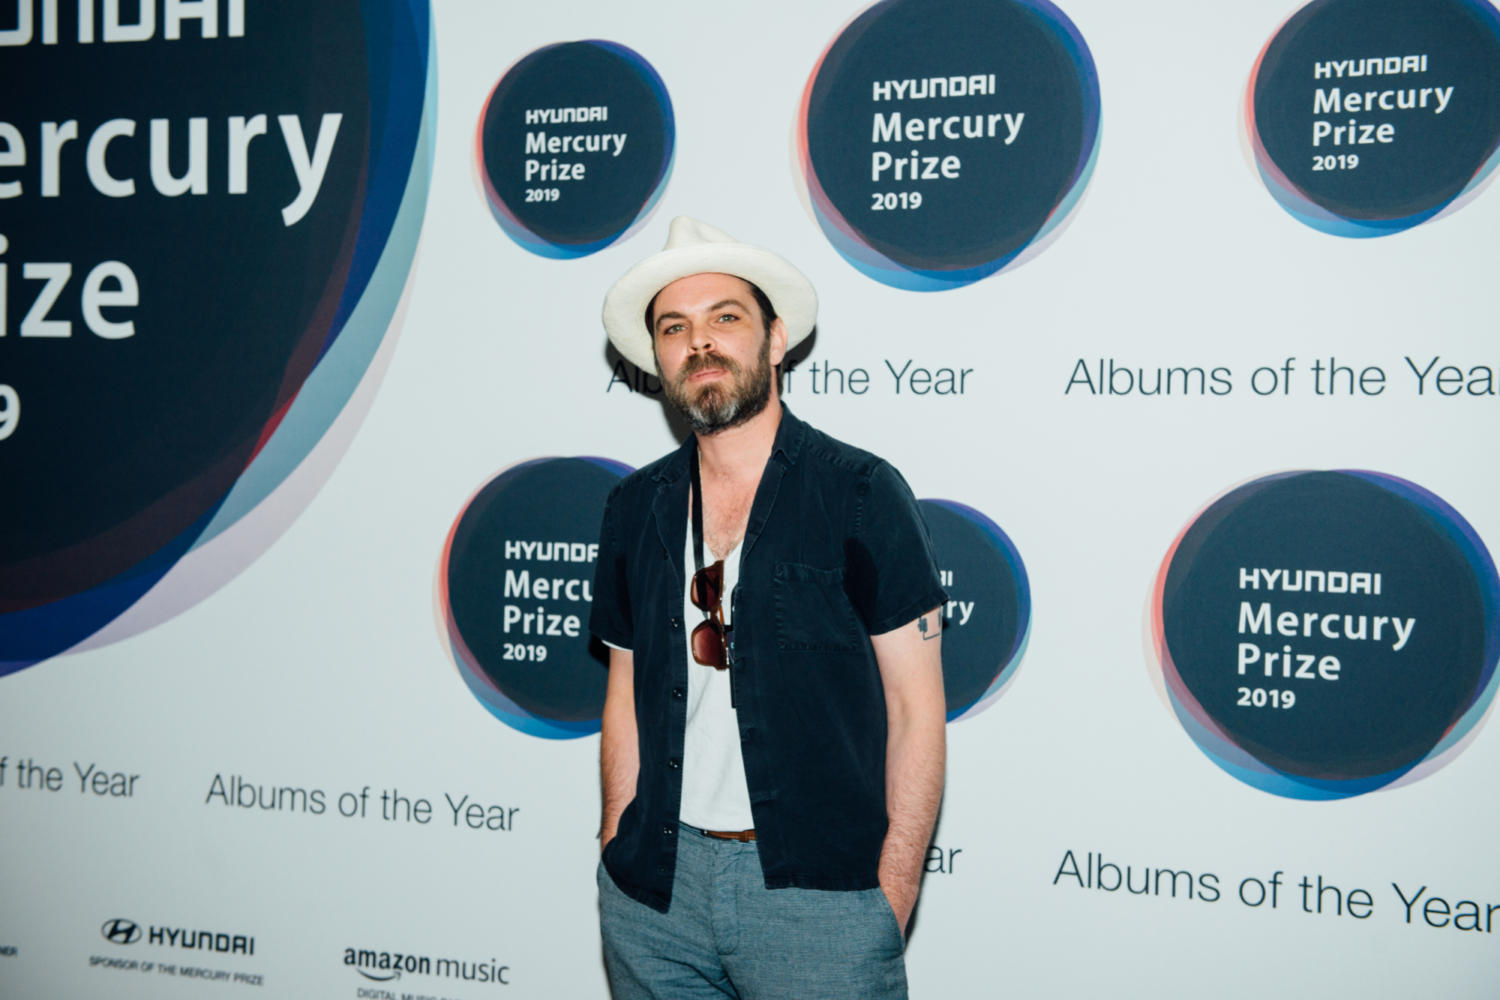 """I'm fully expecting there to be a bit of fisticuffs"" - Gaz Coombes talks judging the 2019 Hyundai Mercury Prize"